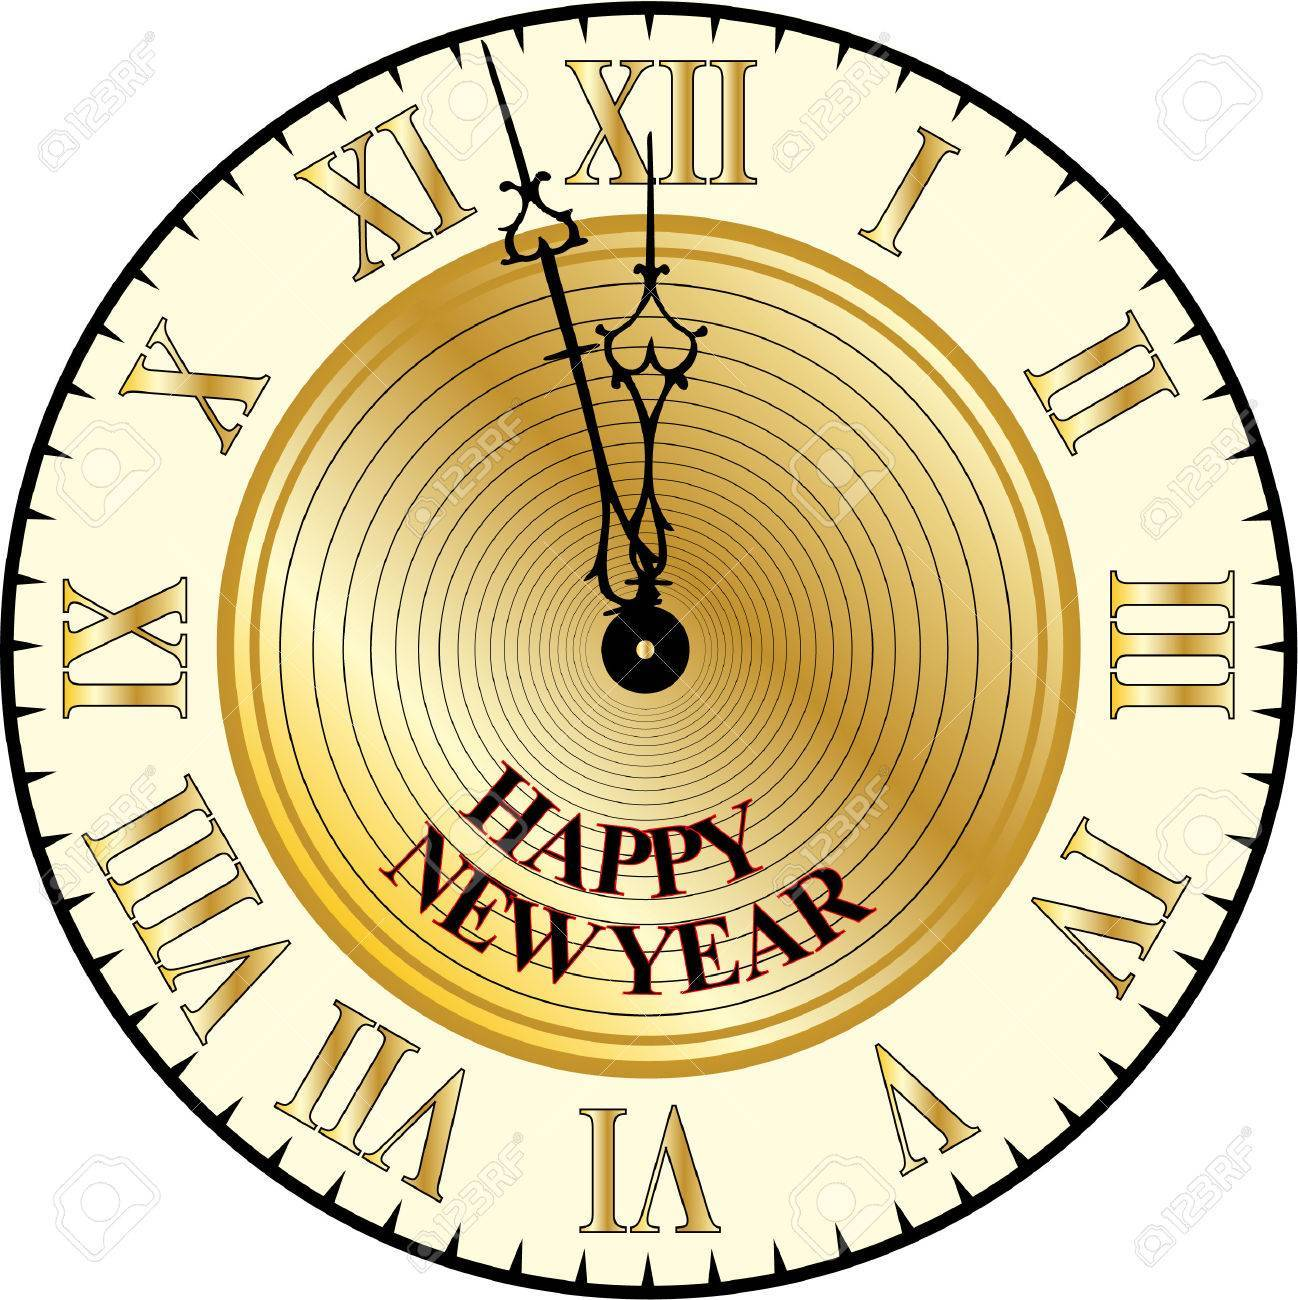 New years eve clock clipart 4 » Clipart Portal.